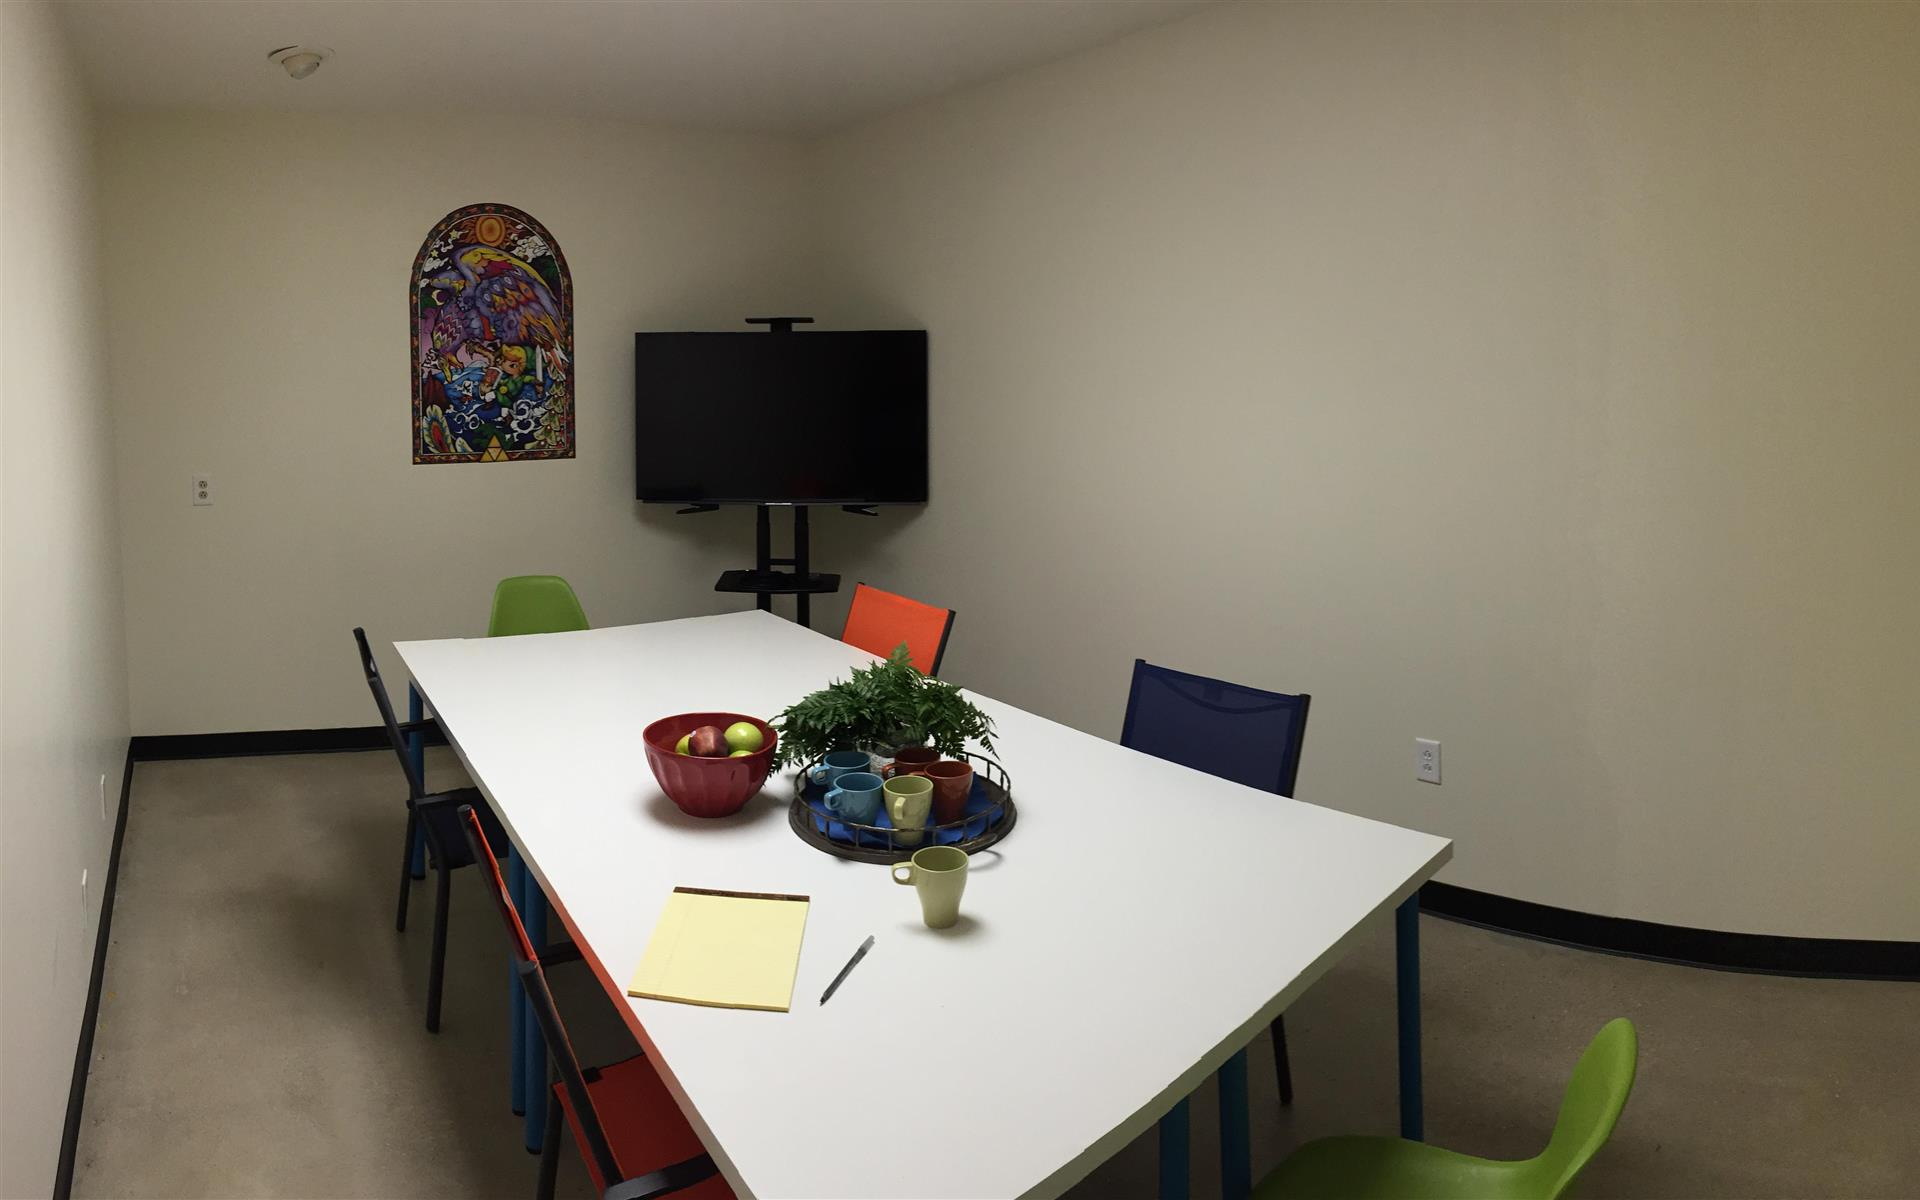 Creating In Cahoots - Conference Room